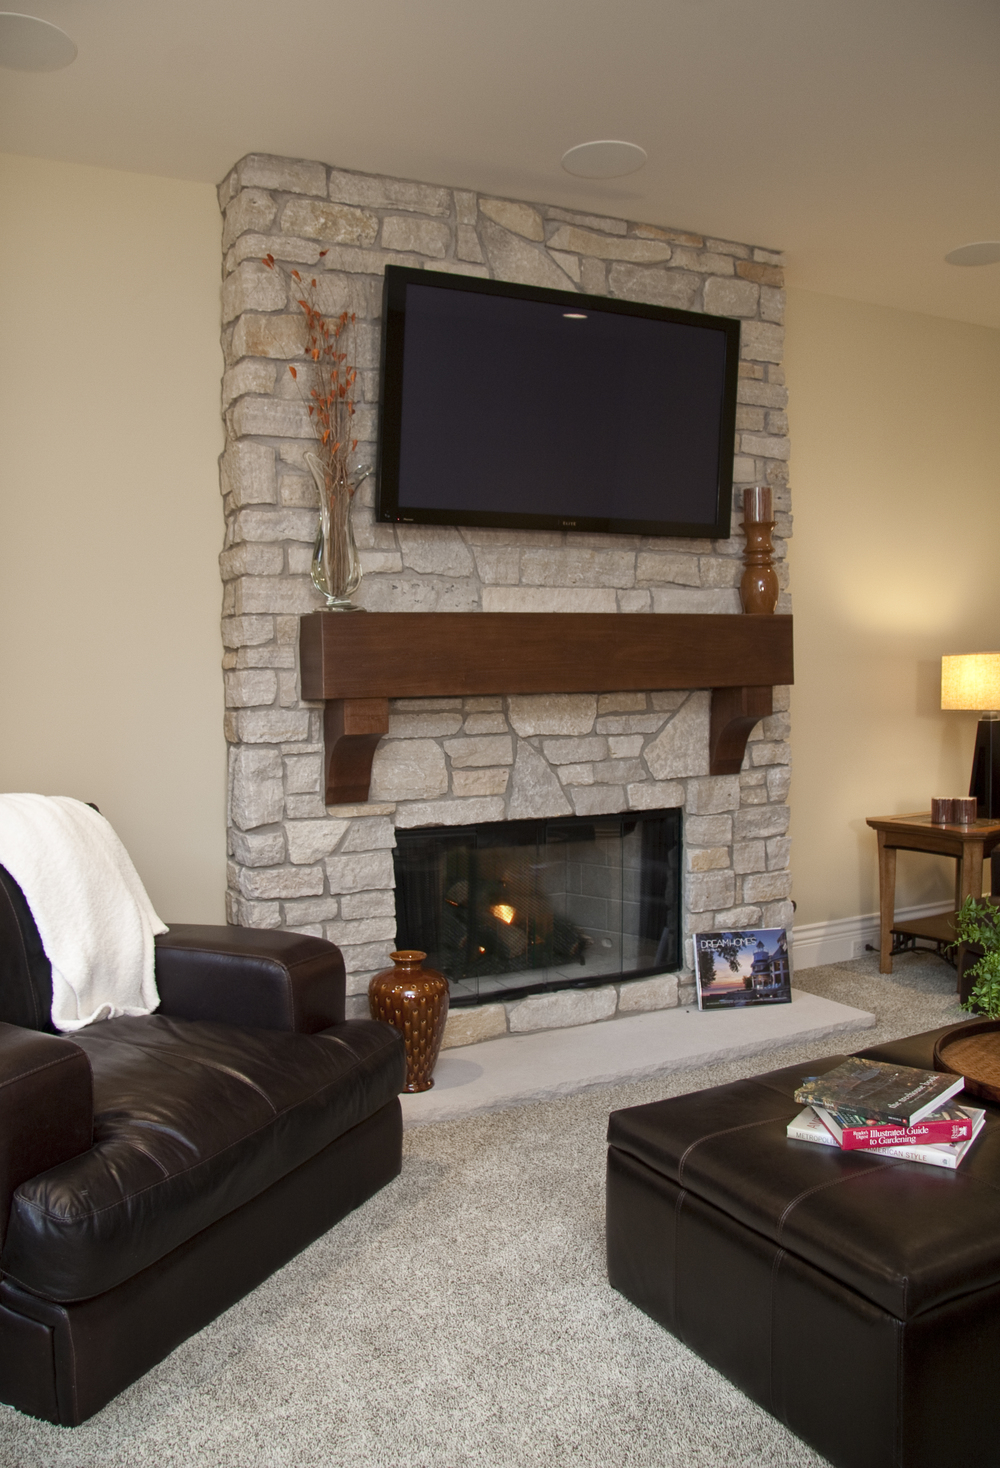 LL fireplace_IMG_3182-1.jpg